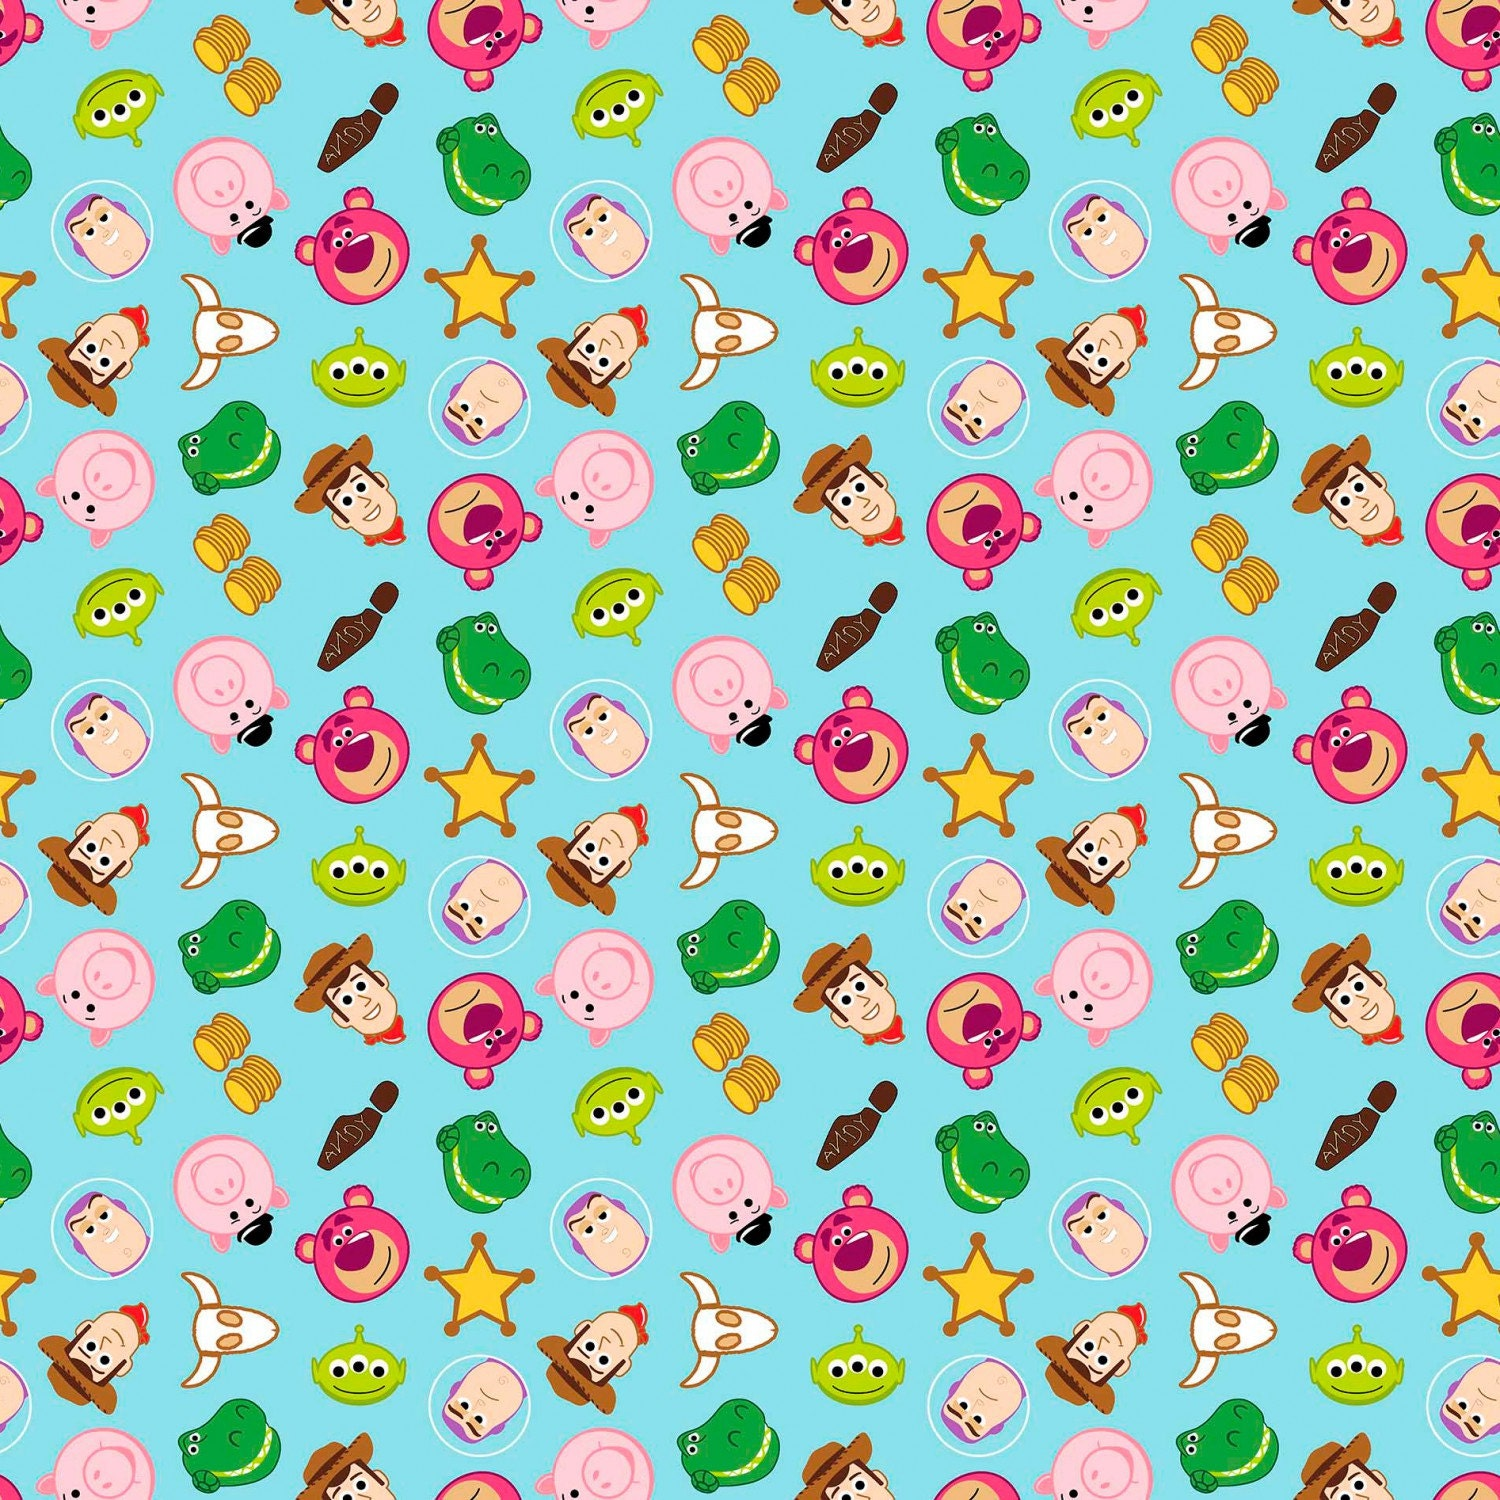 Springs creative toy story emoji fabric by the yard for Emoji material by the yard